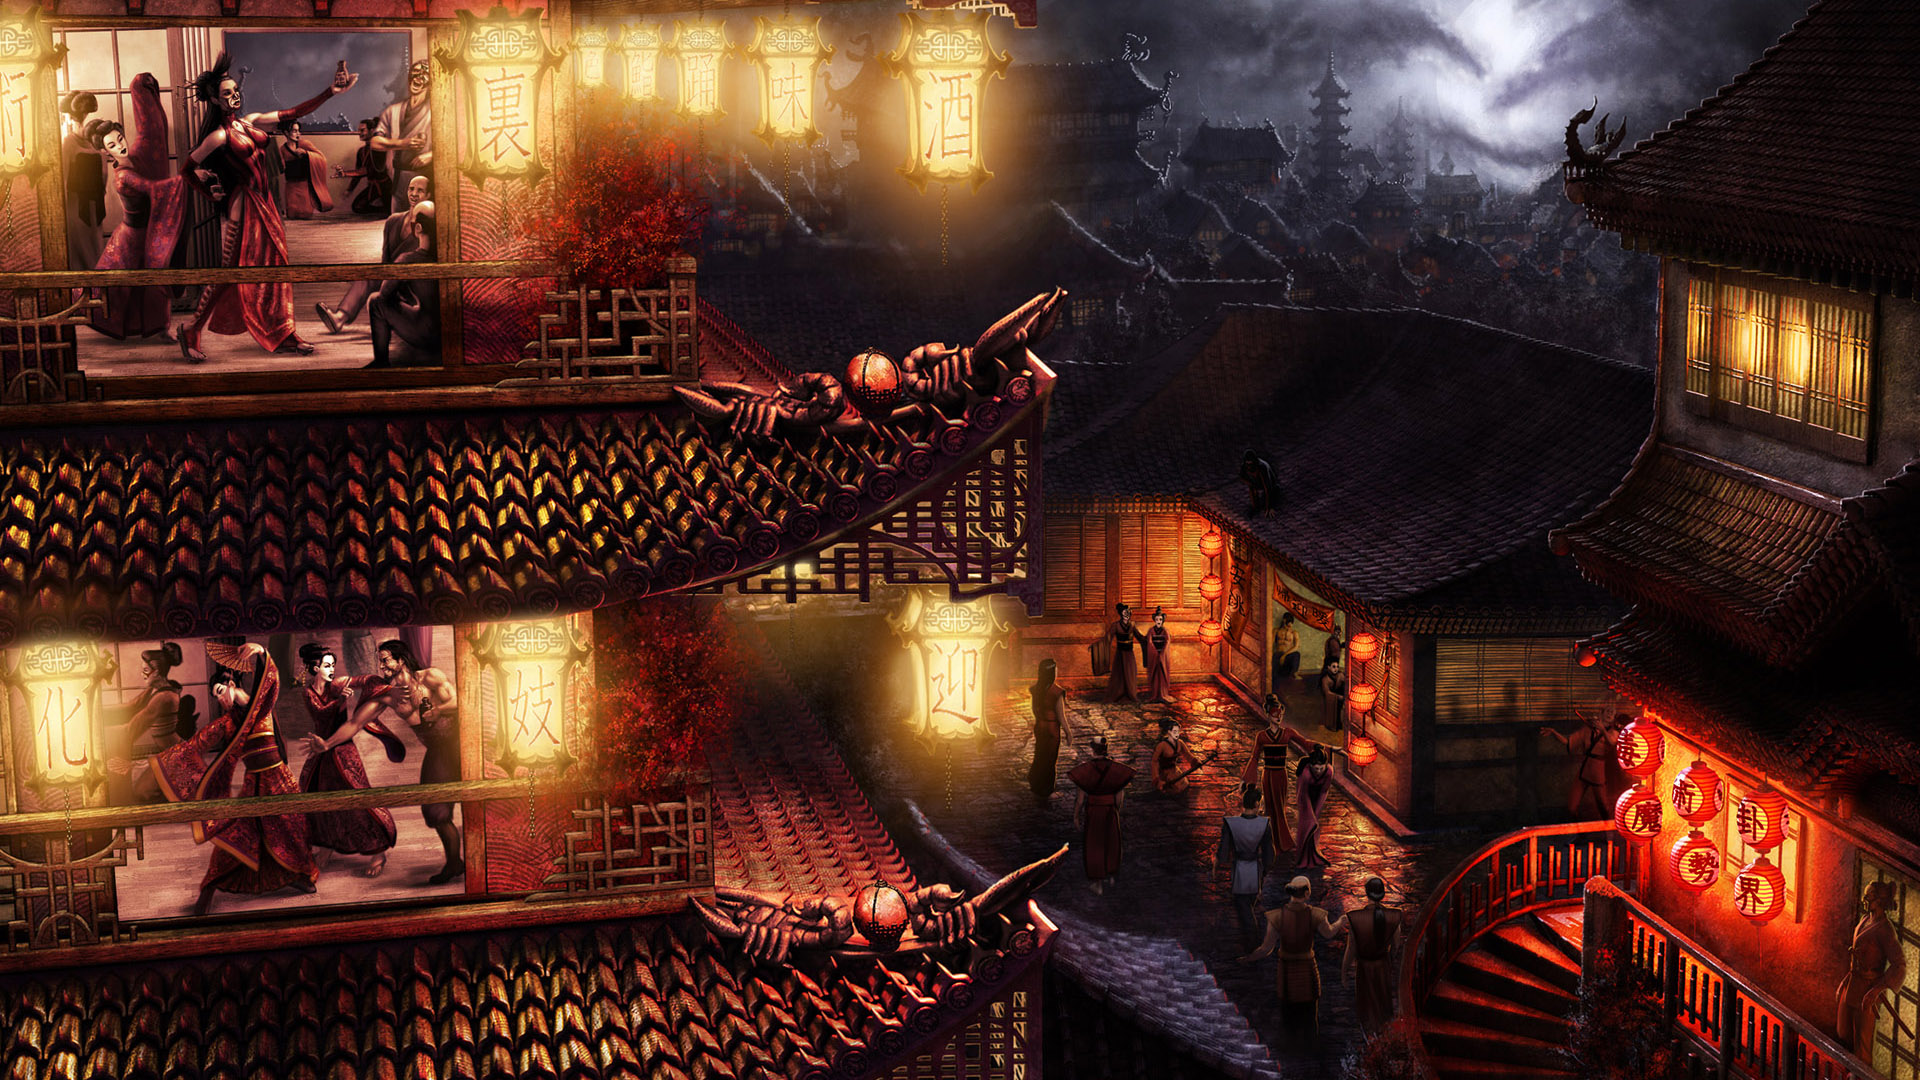 Cool Game Scenes Wallpapers HD Wallpapers 1920x1080